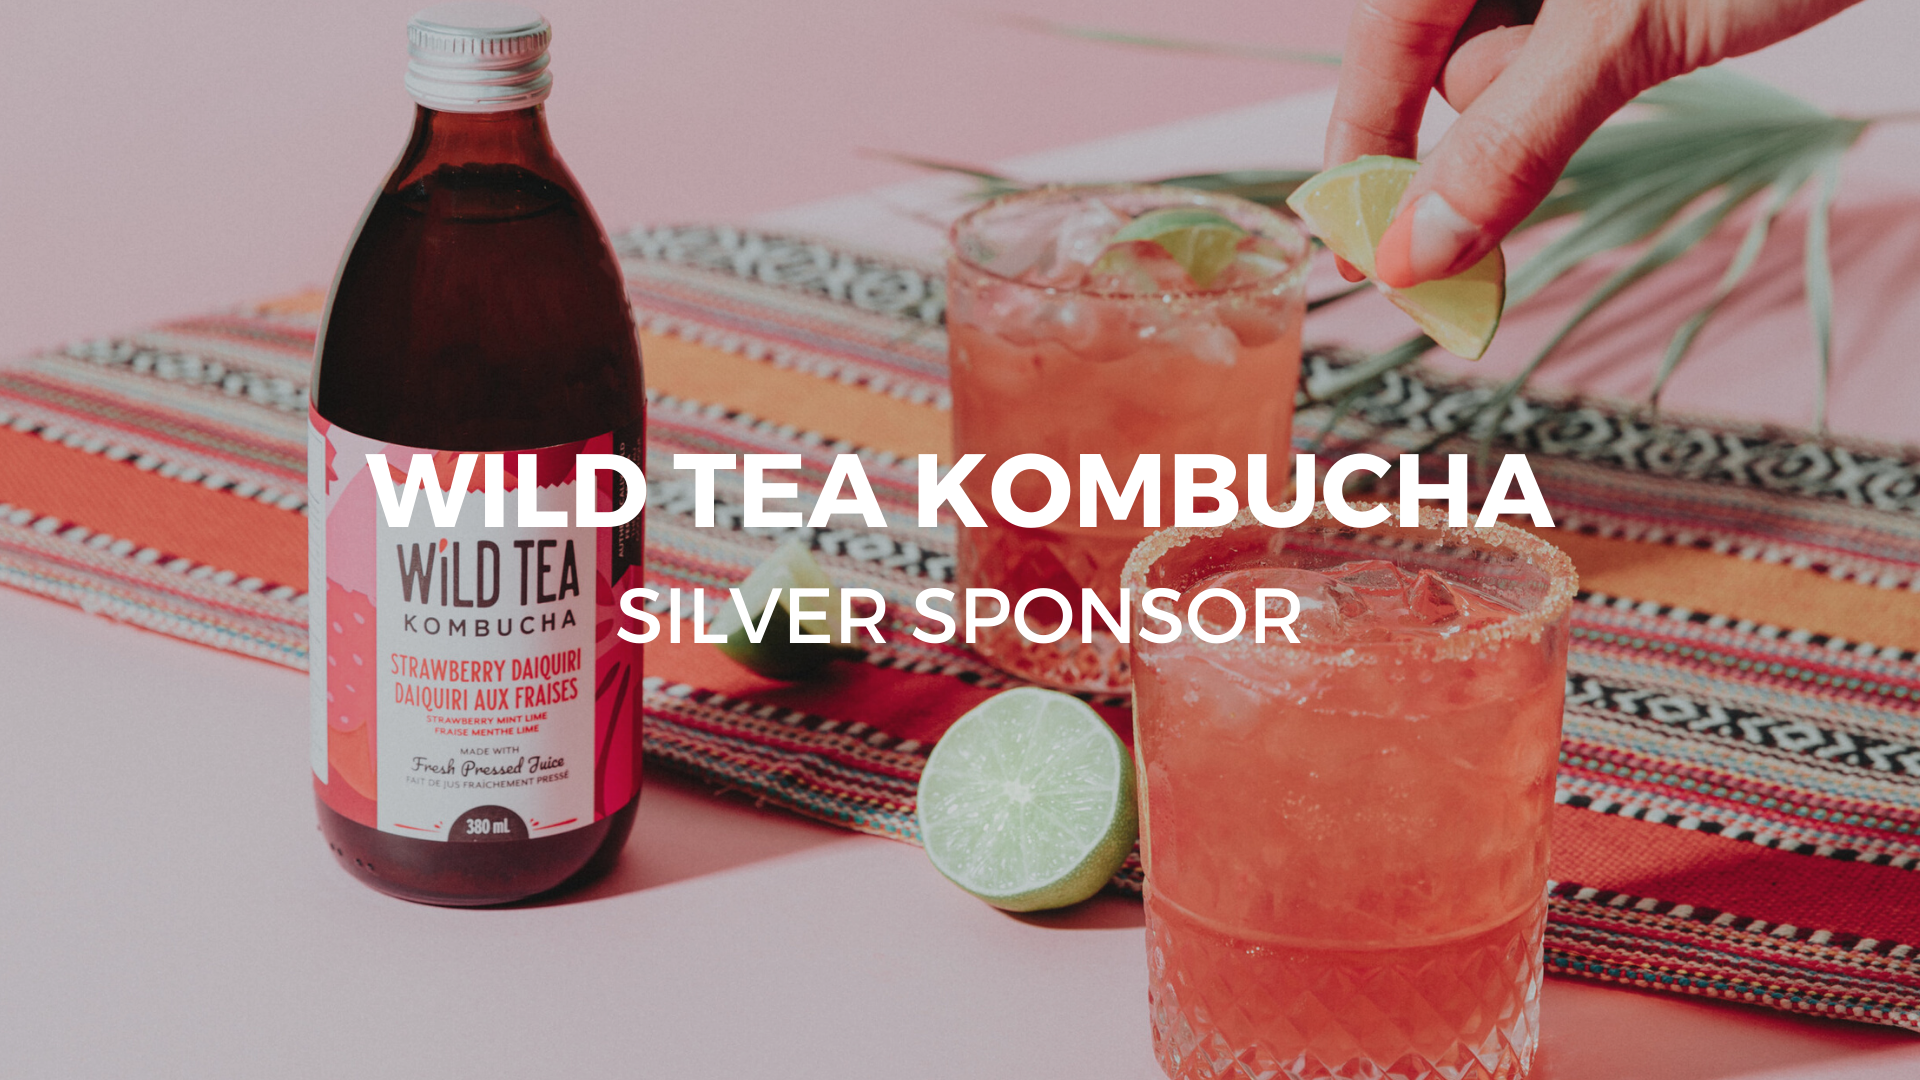 WILD TEA KOMBUCHA IS HAND BREWED WITH LOVE AND CARE IN RIGHT HERE IN CALGARY, ALBERTA, CANADA.